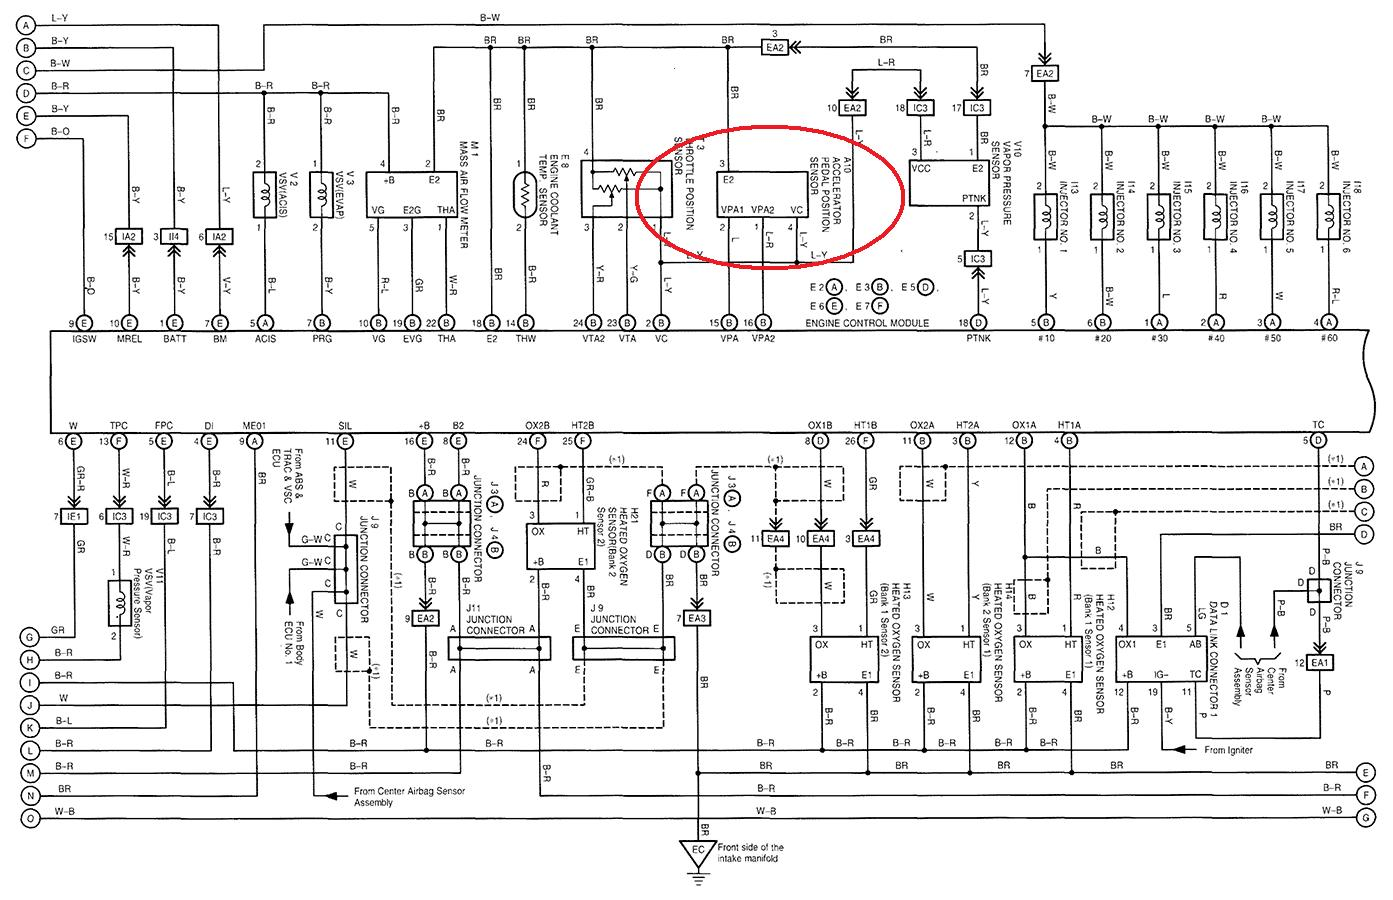 2013 08 03_145701_1 1999 lexus gs300 wiring diagram 1999 lexus gs 300 cd player 95 lexus sc400 wiring diagram at panicattacktreatment.co